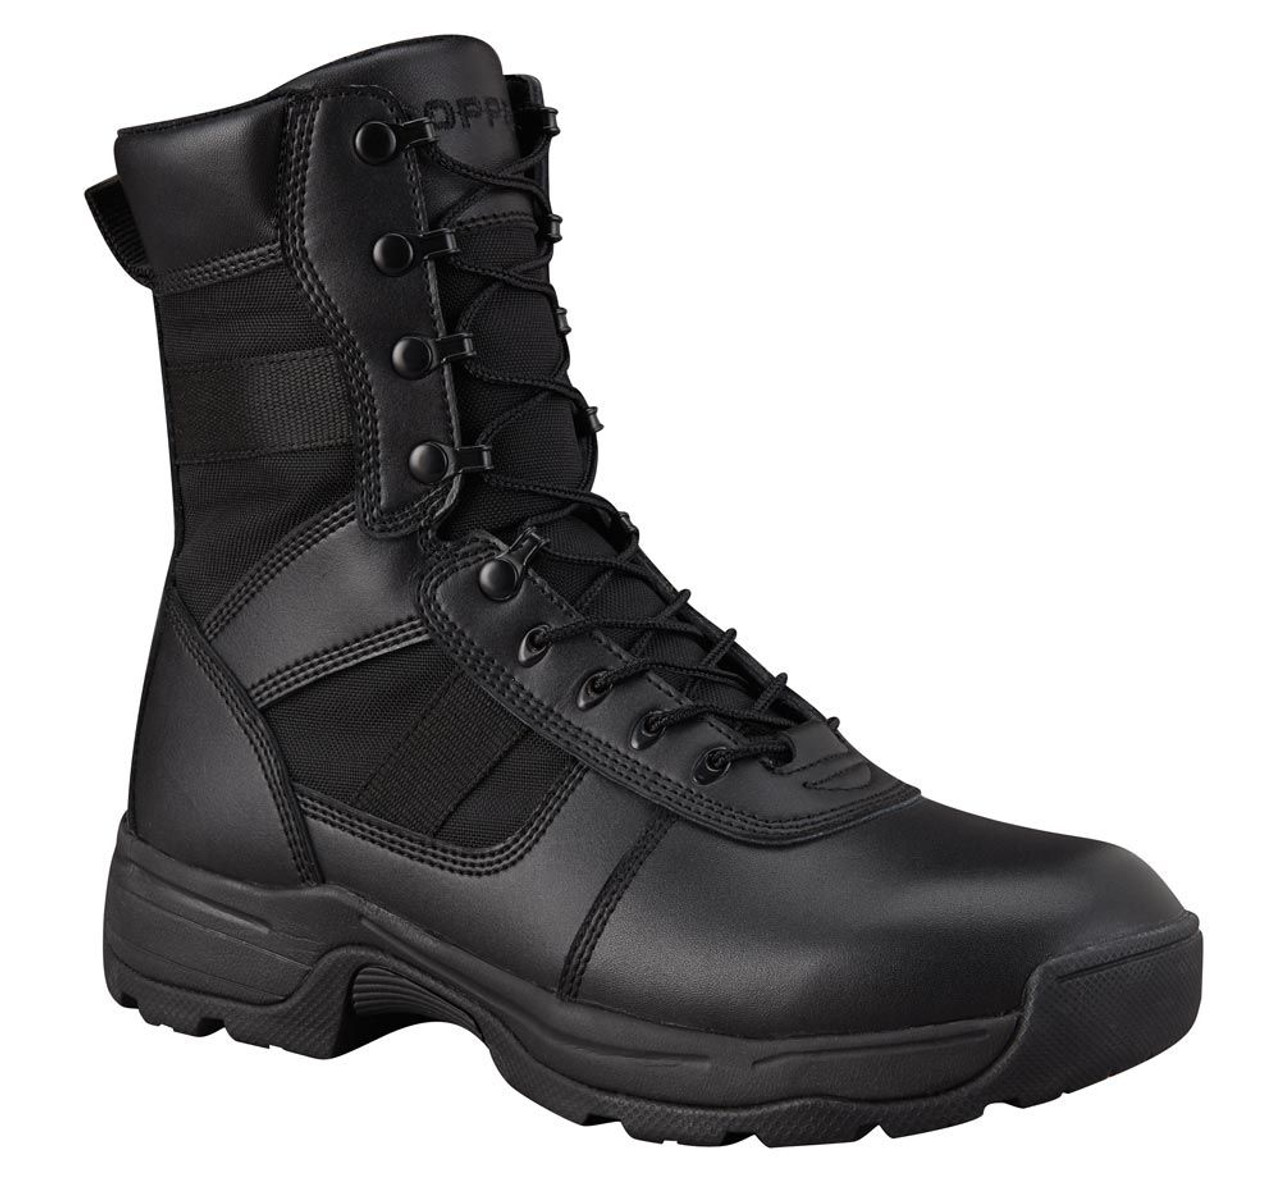 "PROPPER SERIES 100 SIDE-ZIP DUTY TACTICAL 8"" BOOTS F4507 / BLACK"